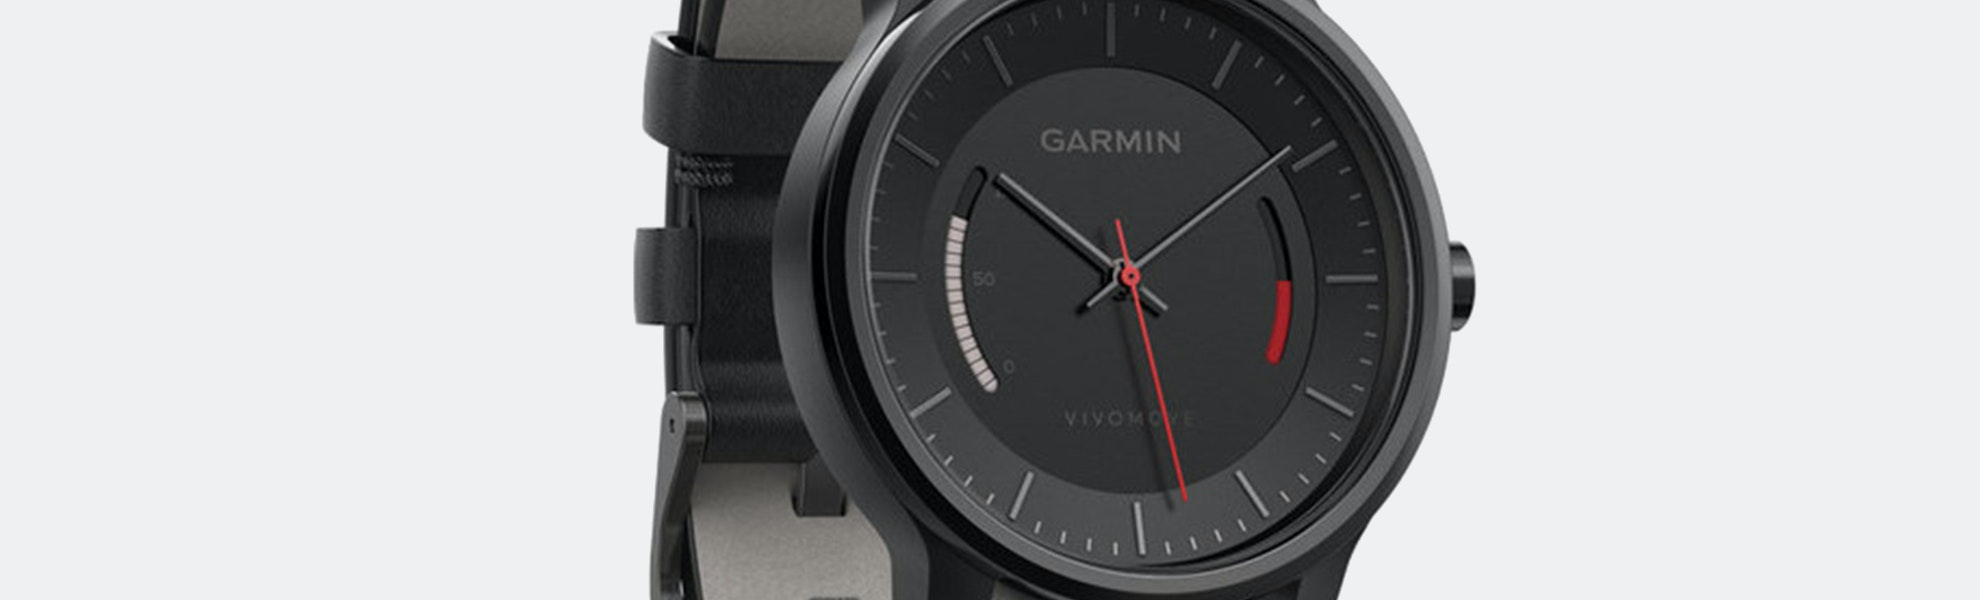 Garmin Vivomove Classic Black w/ Leather Band